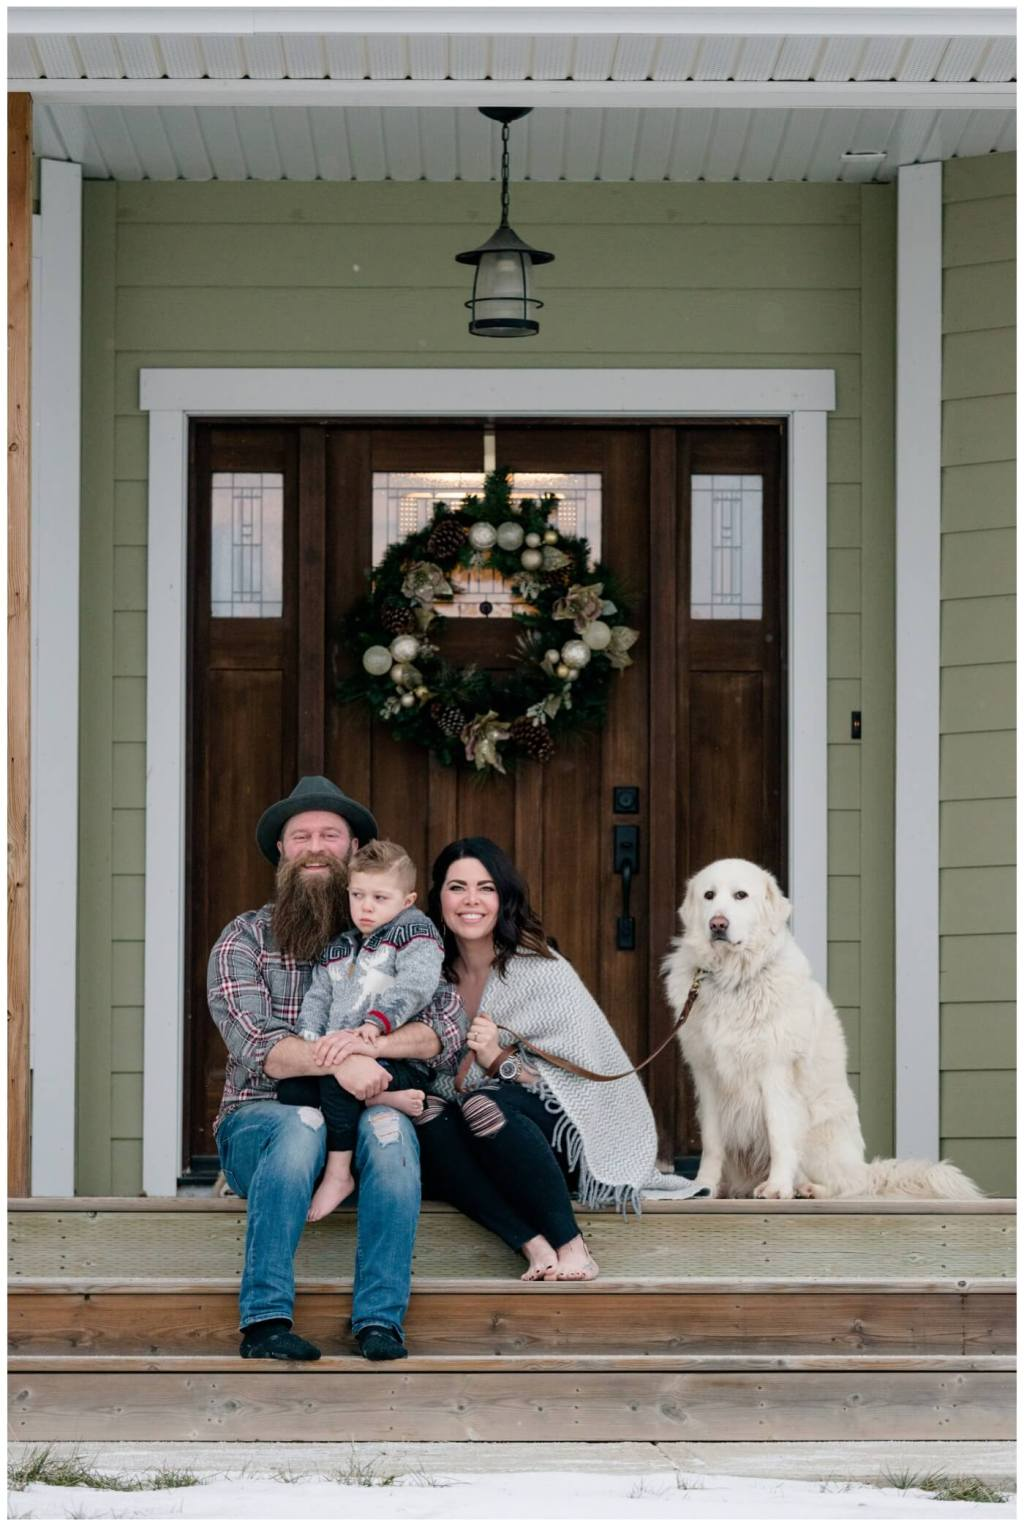 Regina Family Photography - Keen Family - Dionne-Timothy-Shepherd - In home Family Session - Front Porch Snuggle - Blanket - Barefeet - Blanche Devereaux